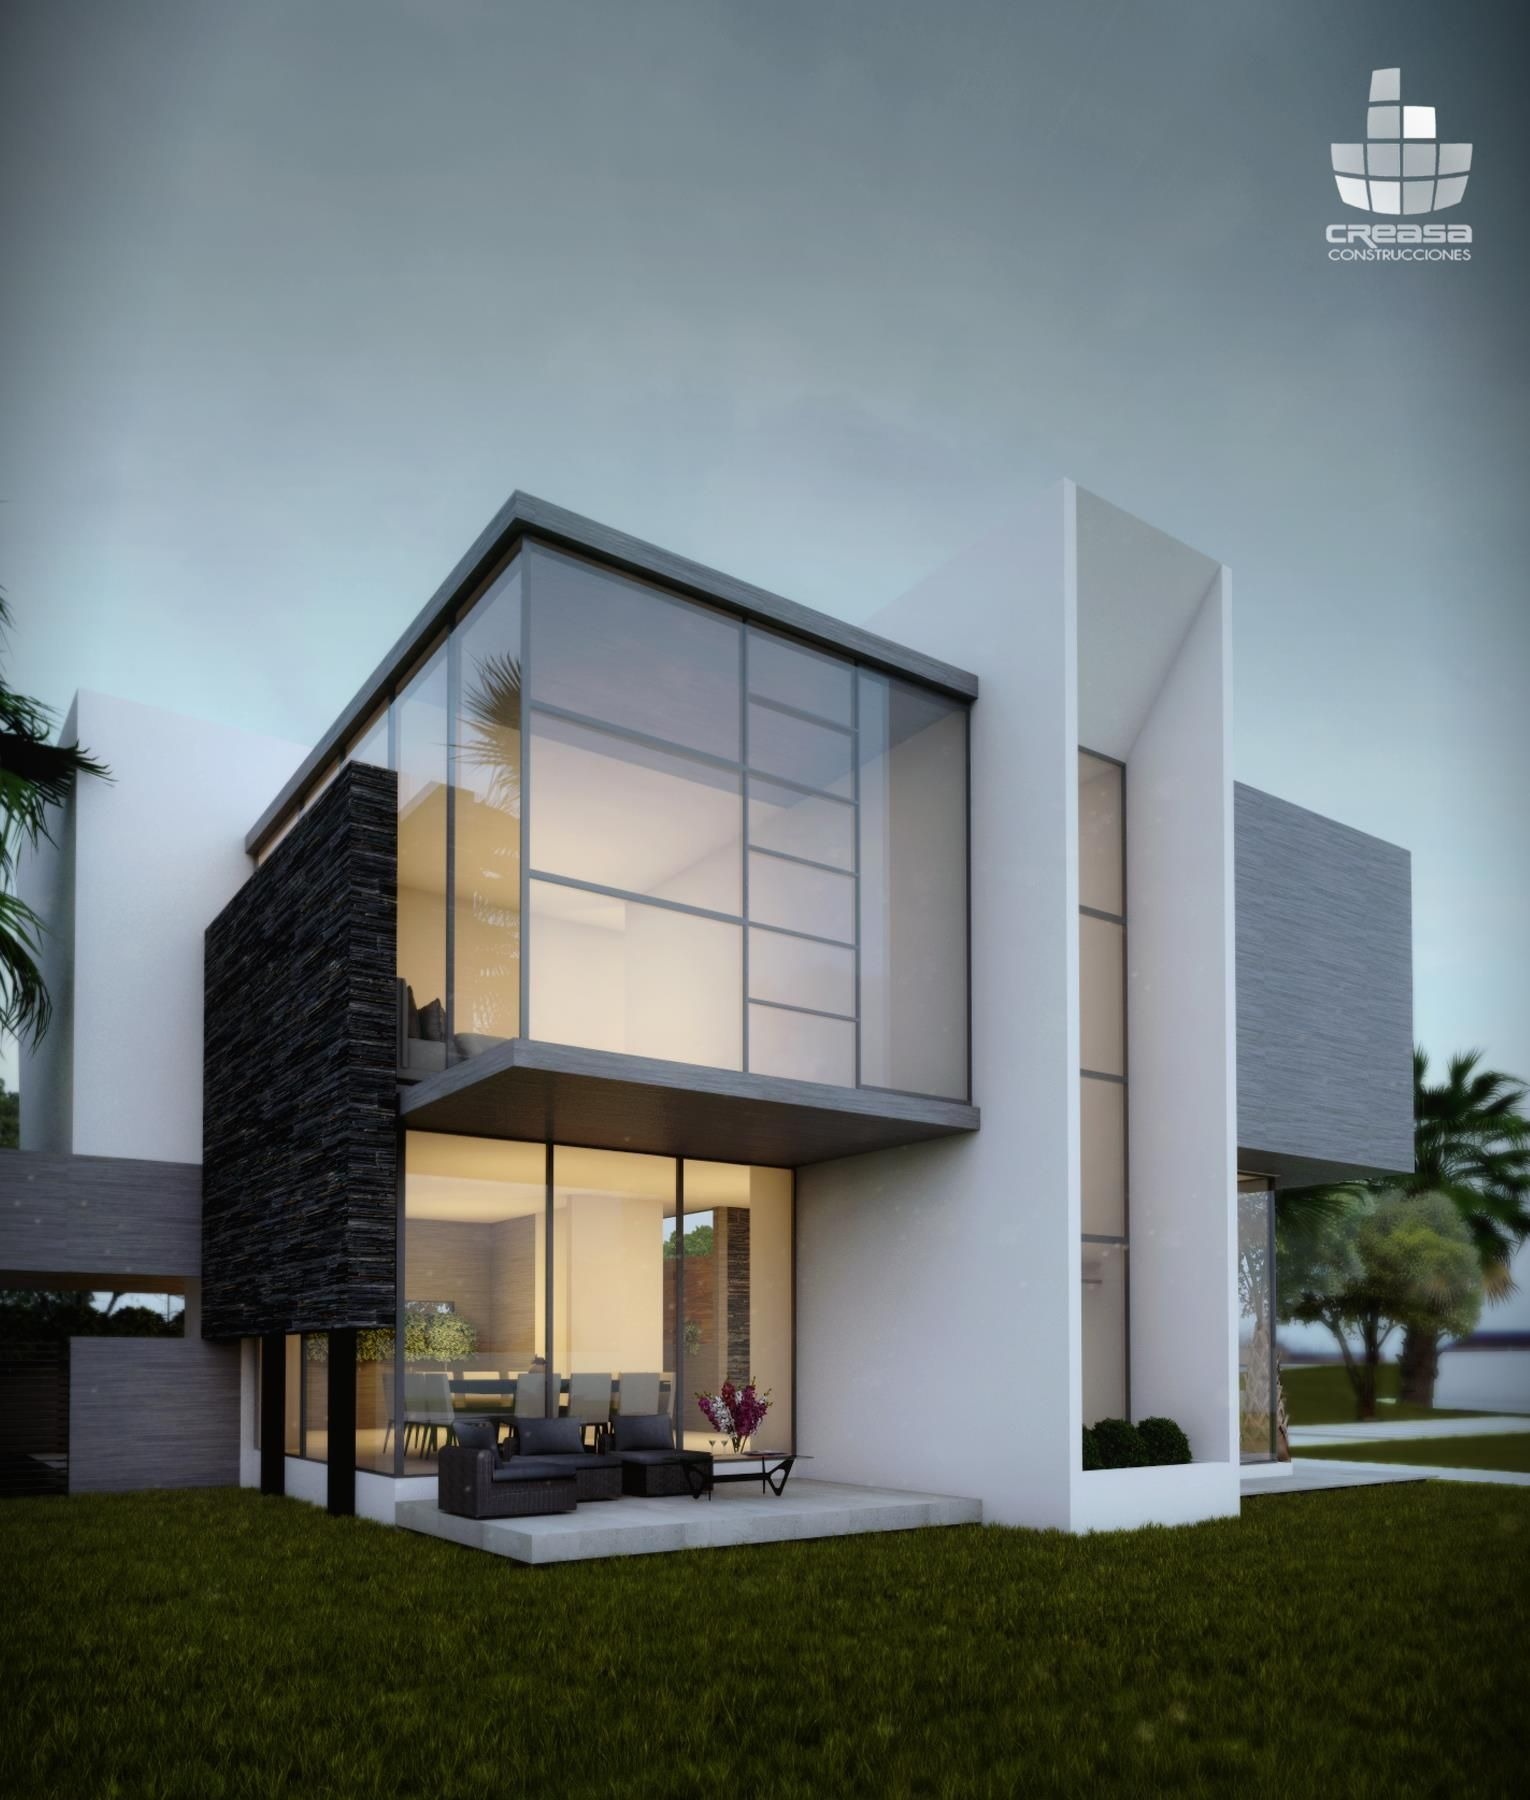 Creasa modern architecture pinterest villas house for New architecture design house